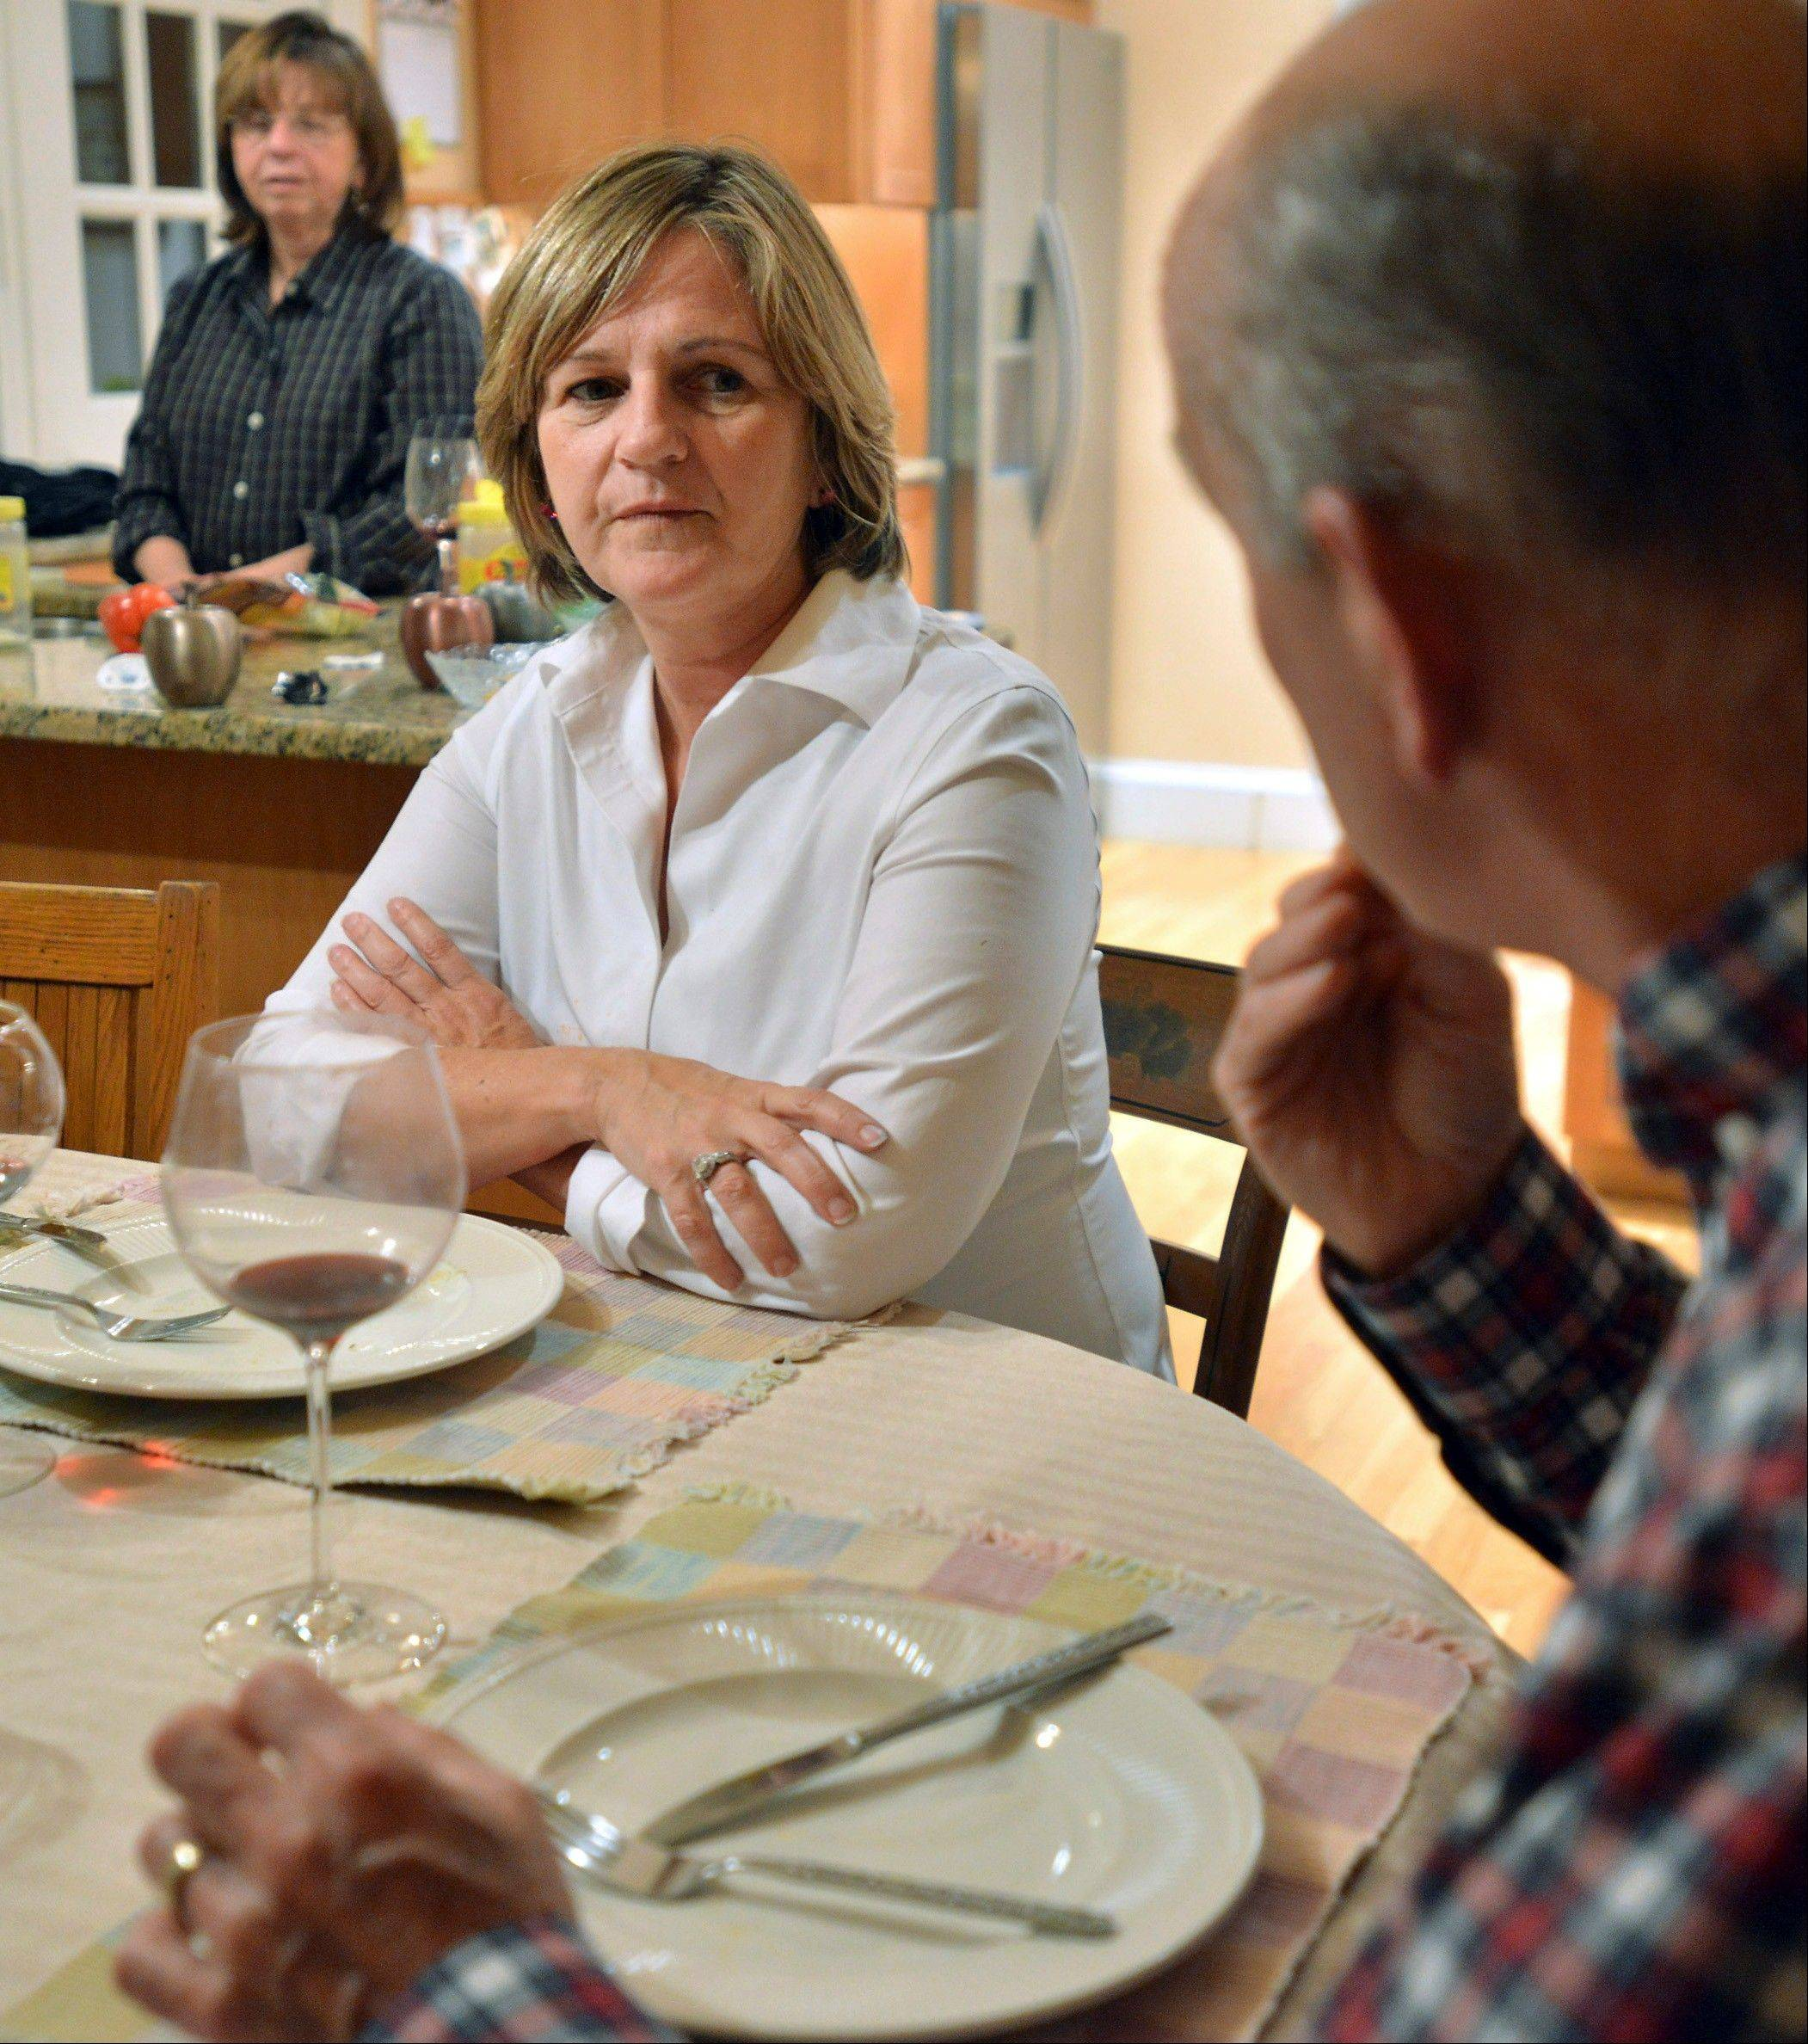 Anne Brennan, center, of Hingham Mass., listens to her sister, Linda Marshall, rear, and brother-in-law Steve Marshall, right, discuss the recent presidential election as the family gathers for dinner in Hingham and where politics are a frequent -- and divisive -- topic of conversation.